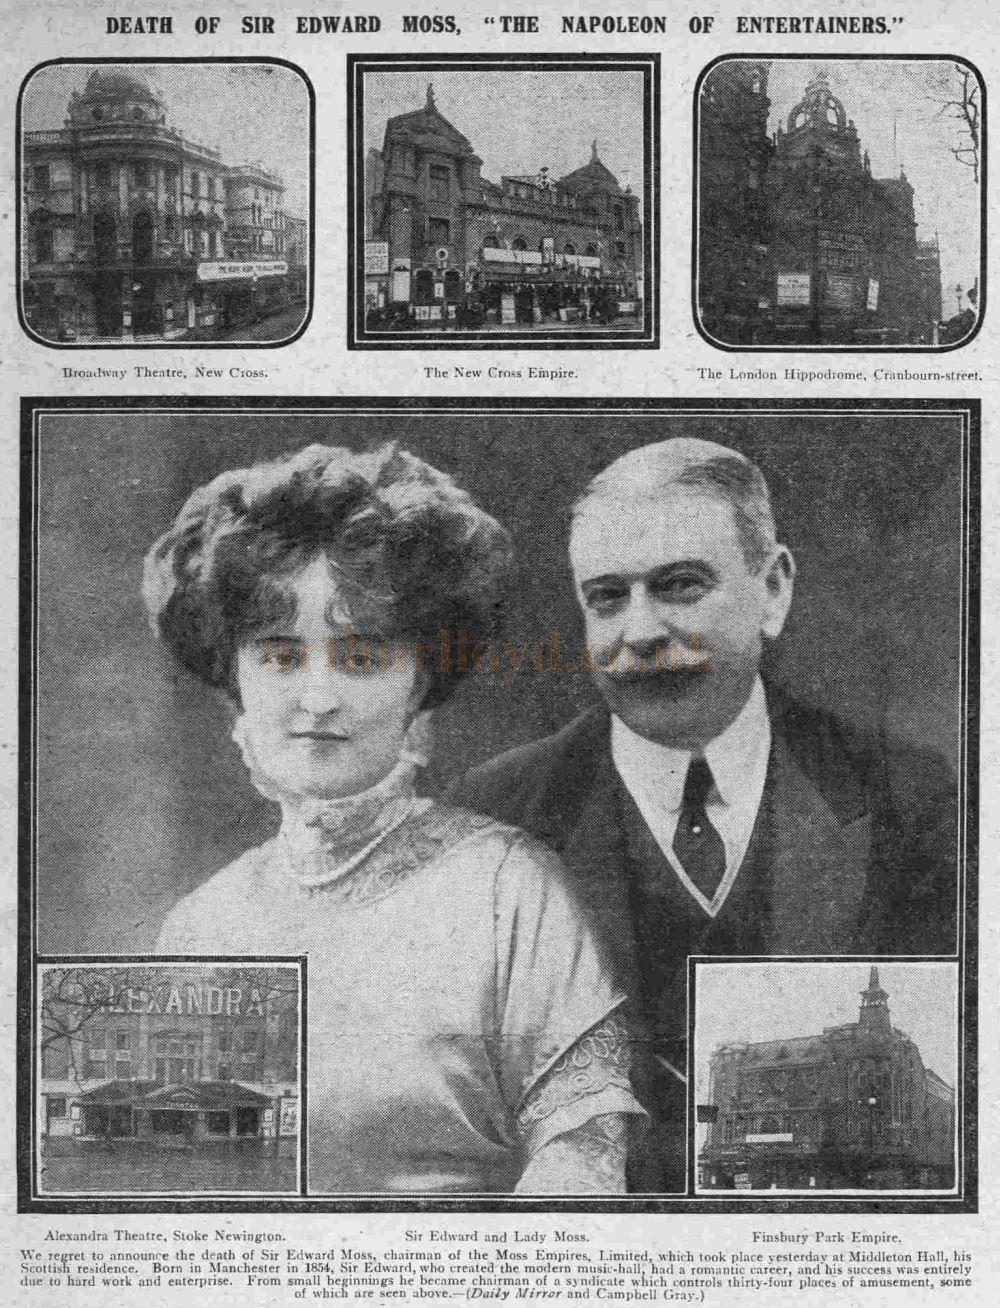 An illustrated page from the Daily Mirror from Tuesday the 26th of November 1912 on the death of Edward Moss.